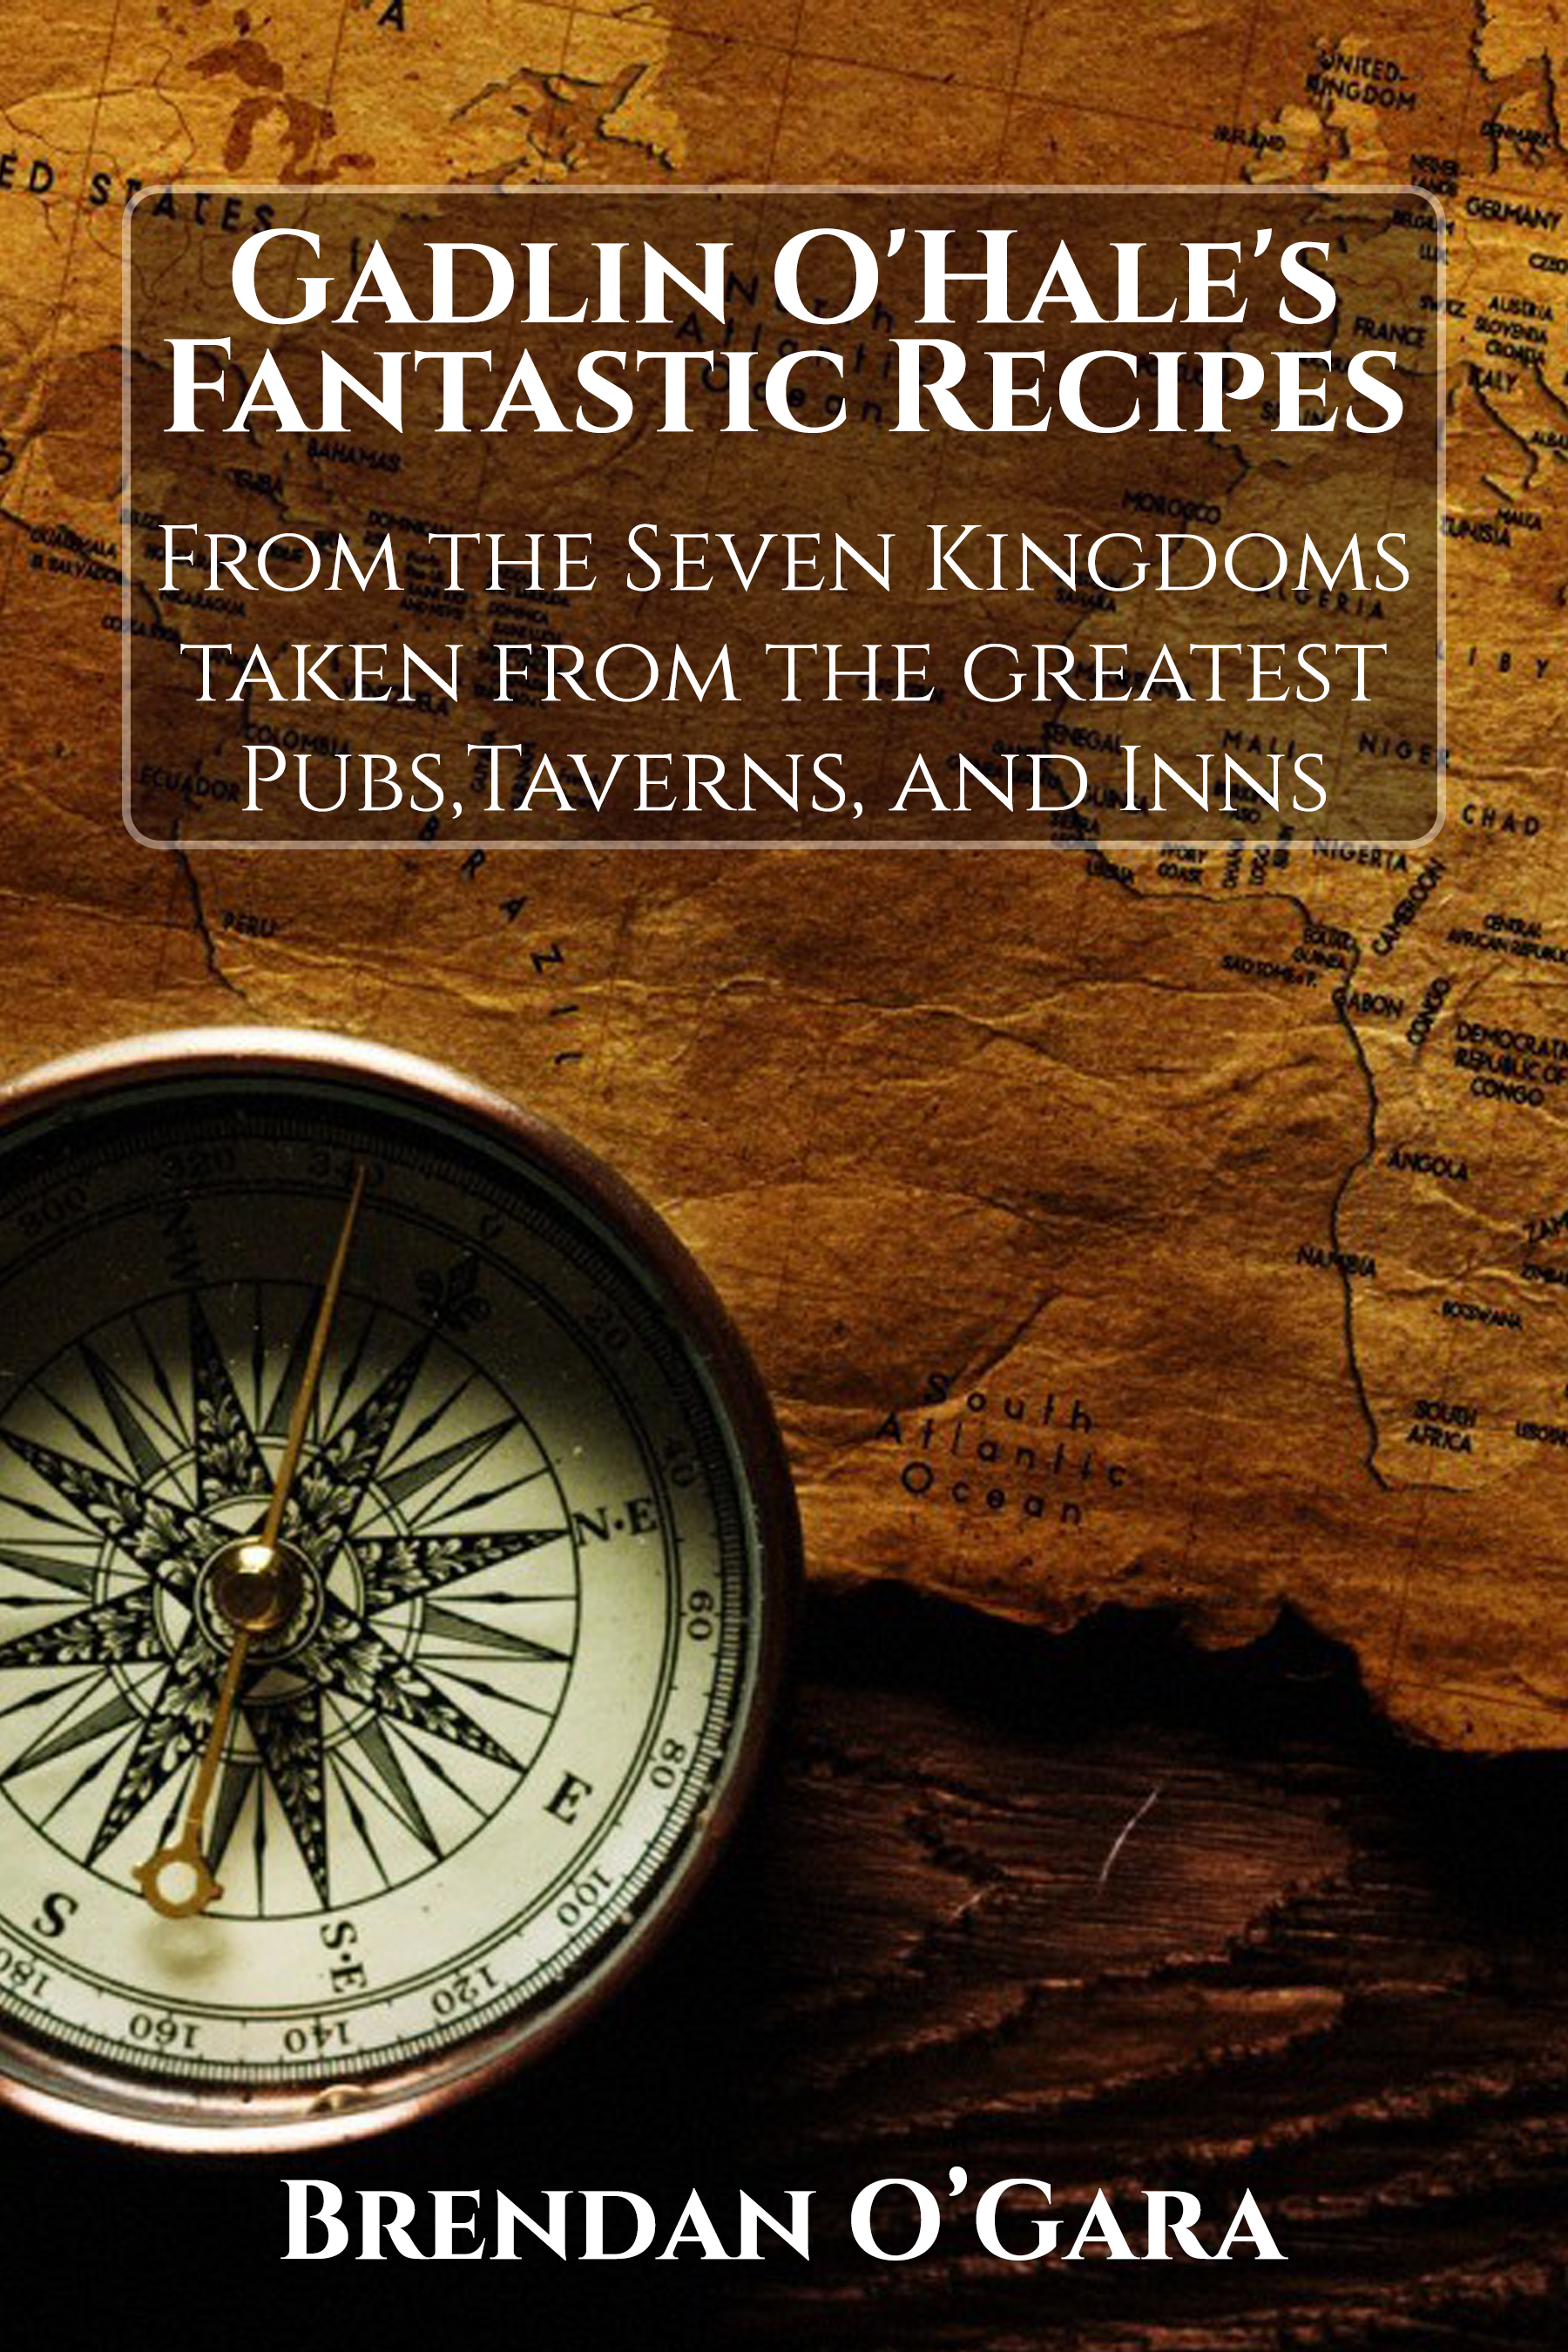 Gadlin O'Hale's Fantastic Recipes